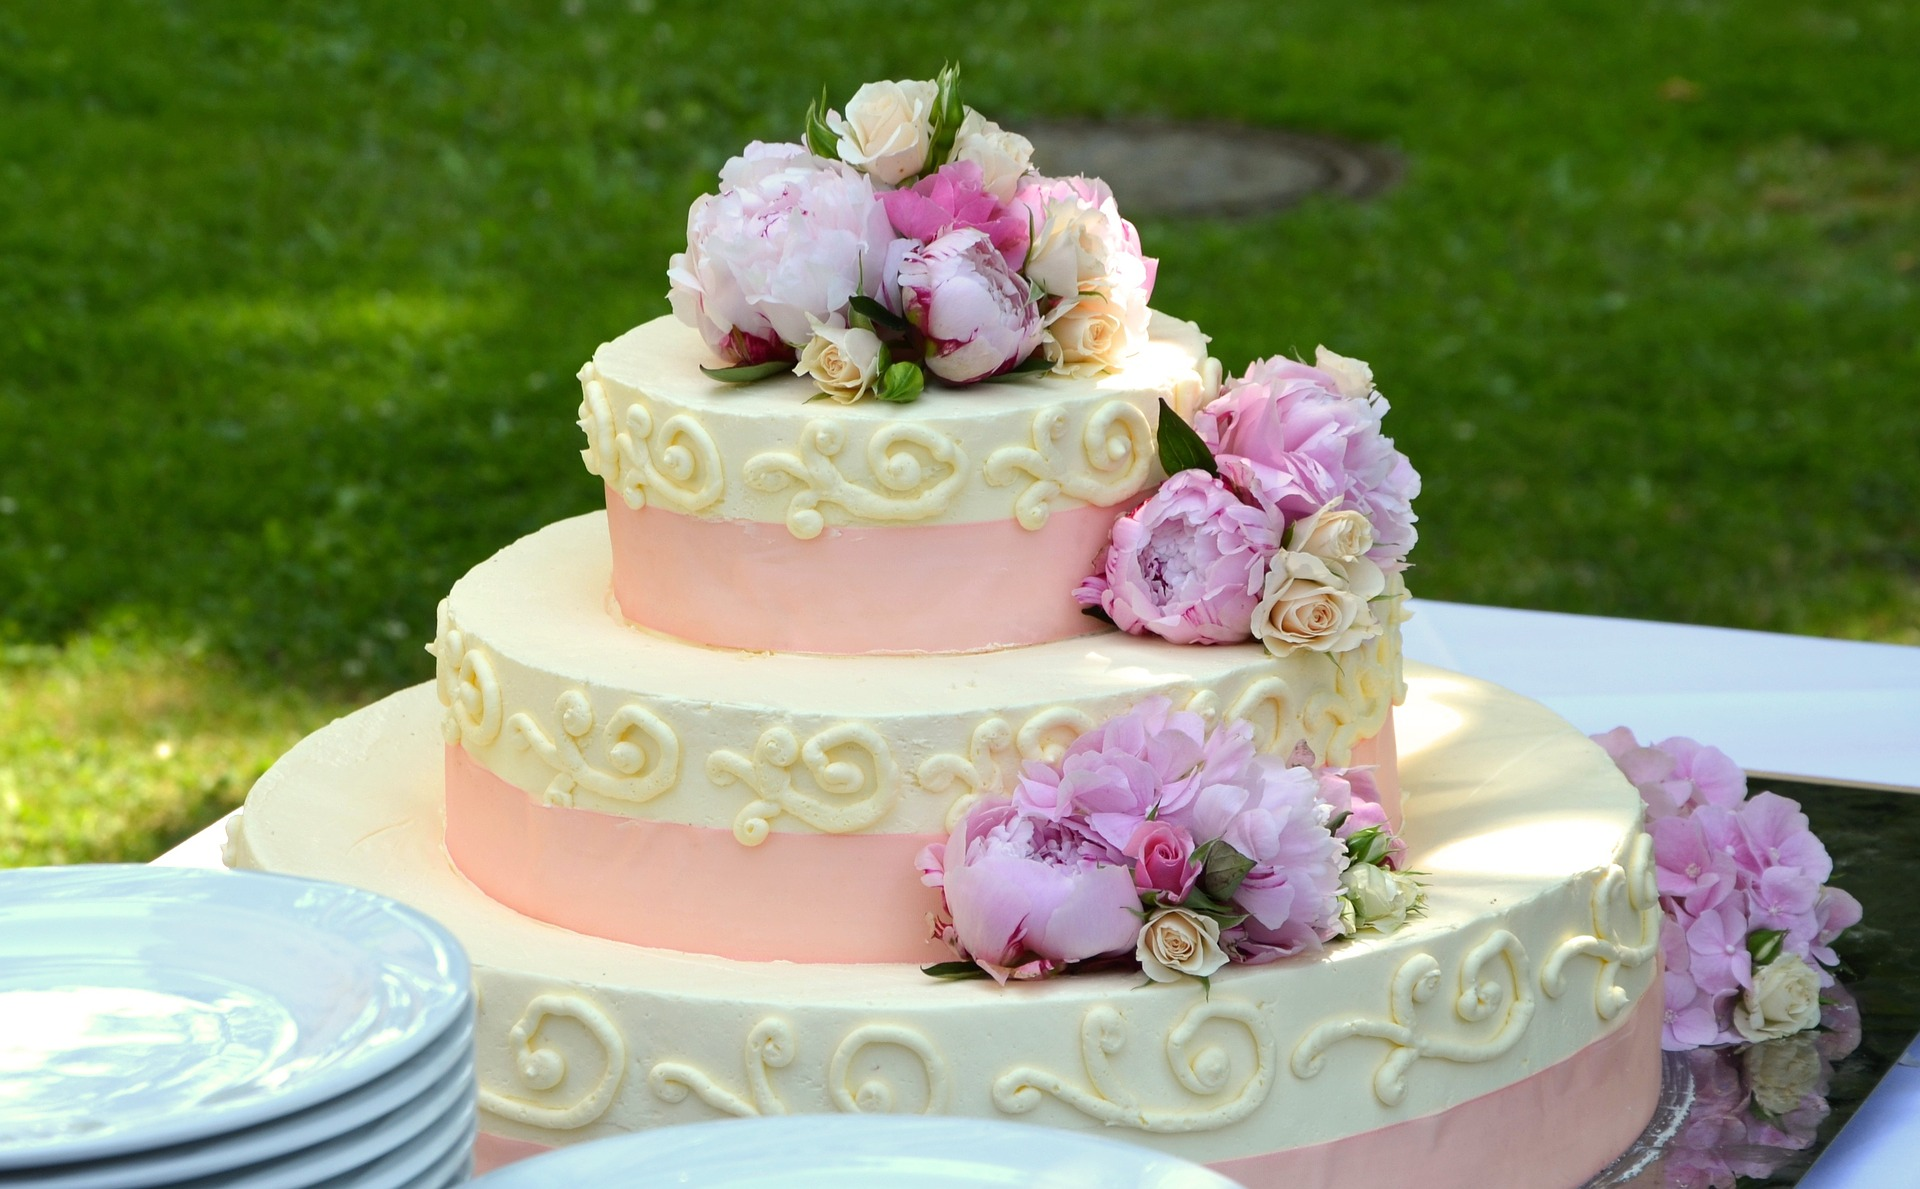 How To Have A Wedding Cake When You Don't Like Fruit Cake